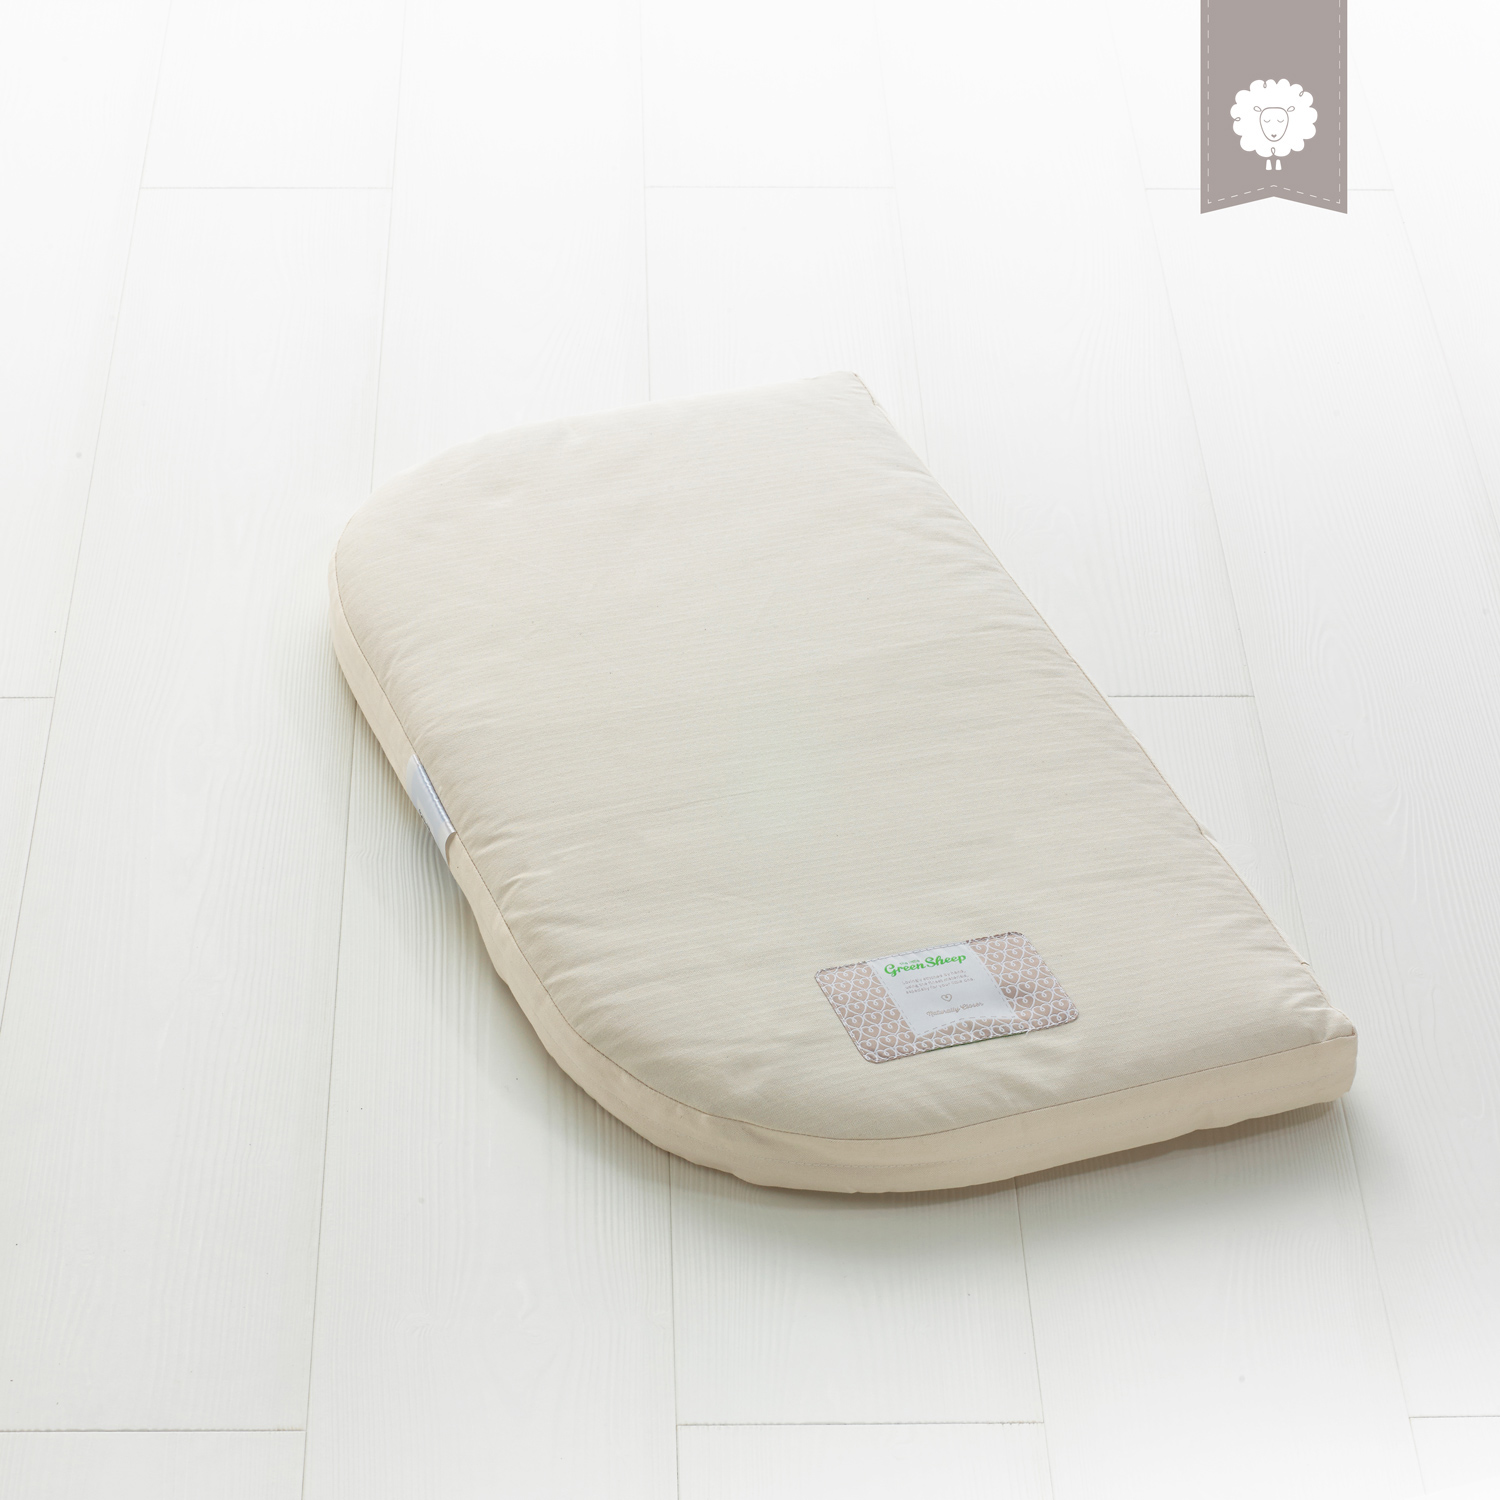 The Little Green Sheep Natural BabyBay Mattress 81 x 42 cm